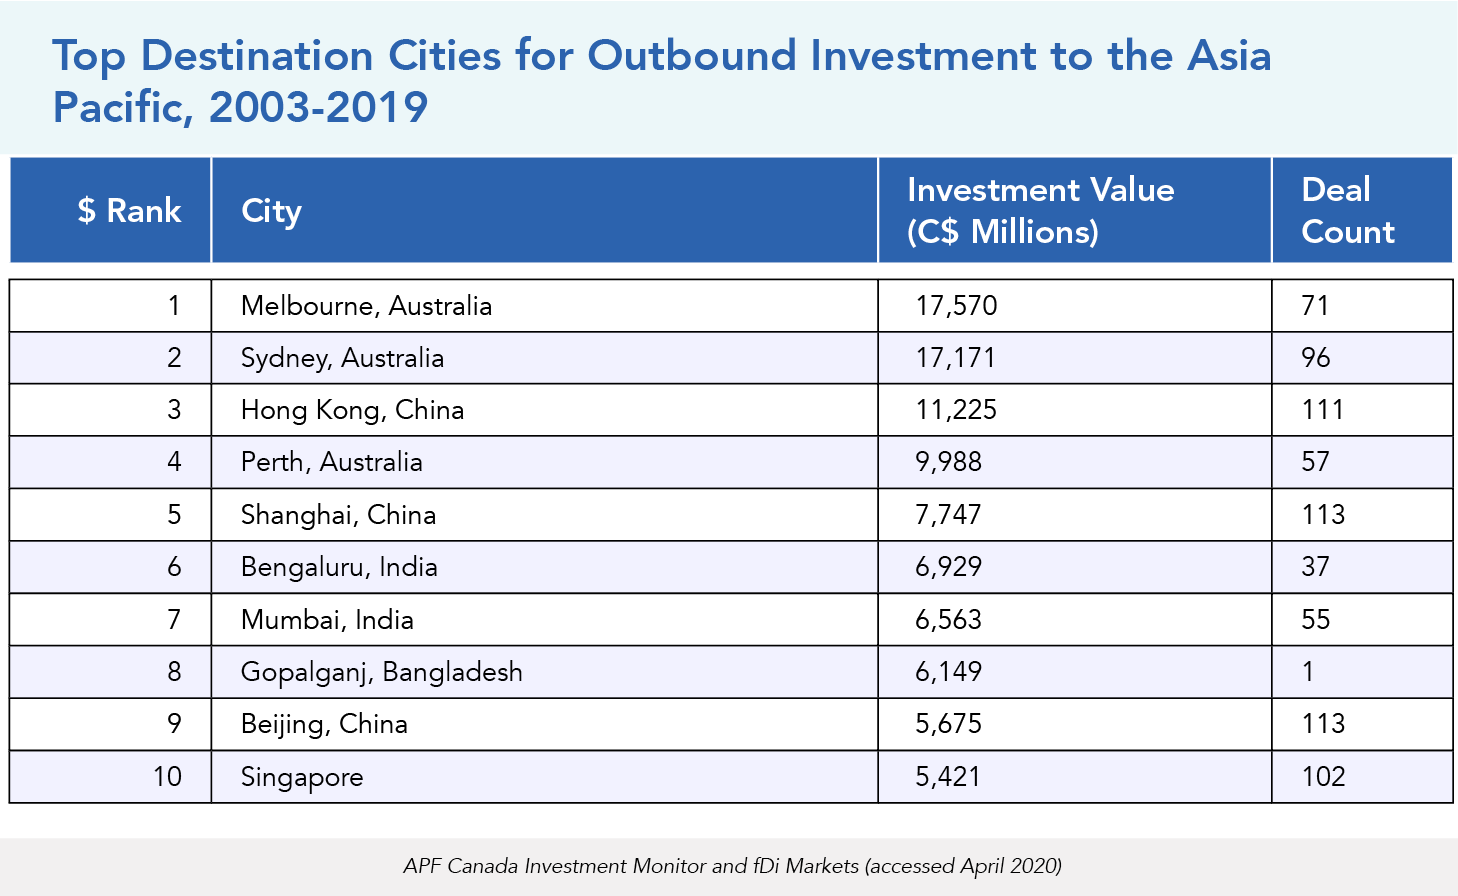 Top Destination Cities for Outbound Investment to the Asia Pacific, 2003-2019